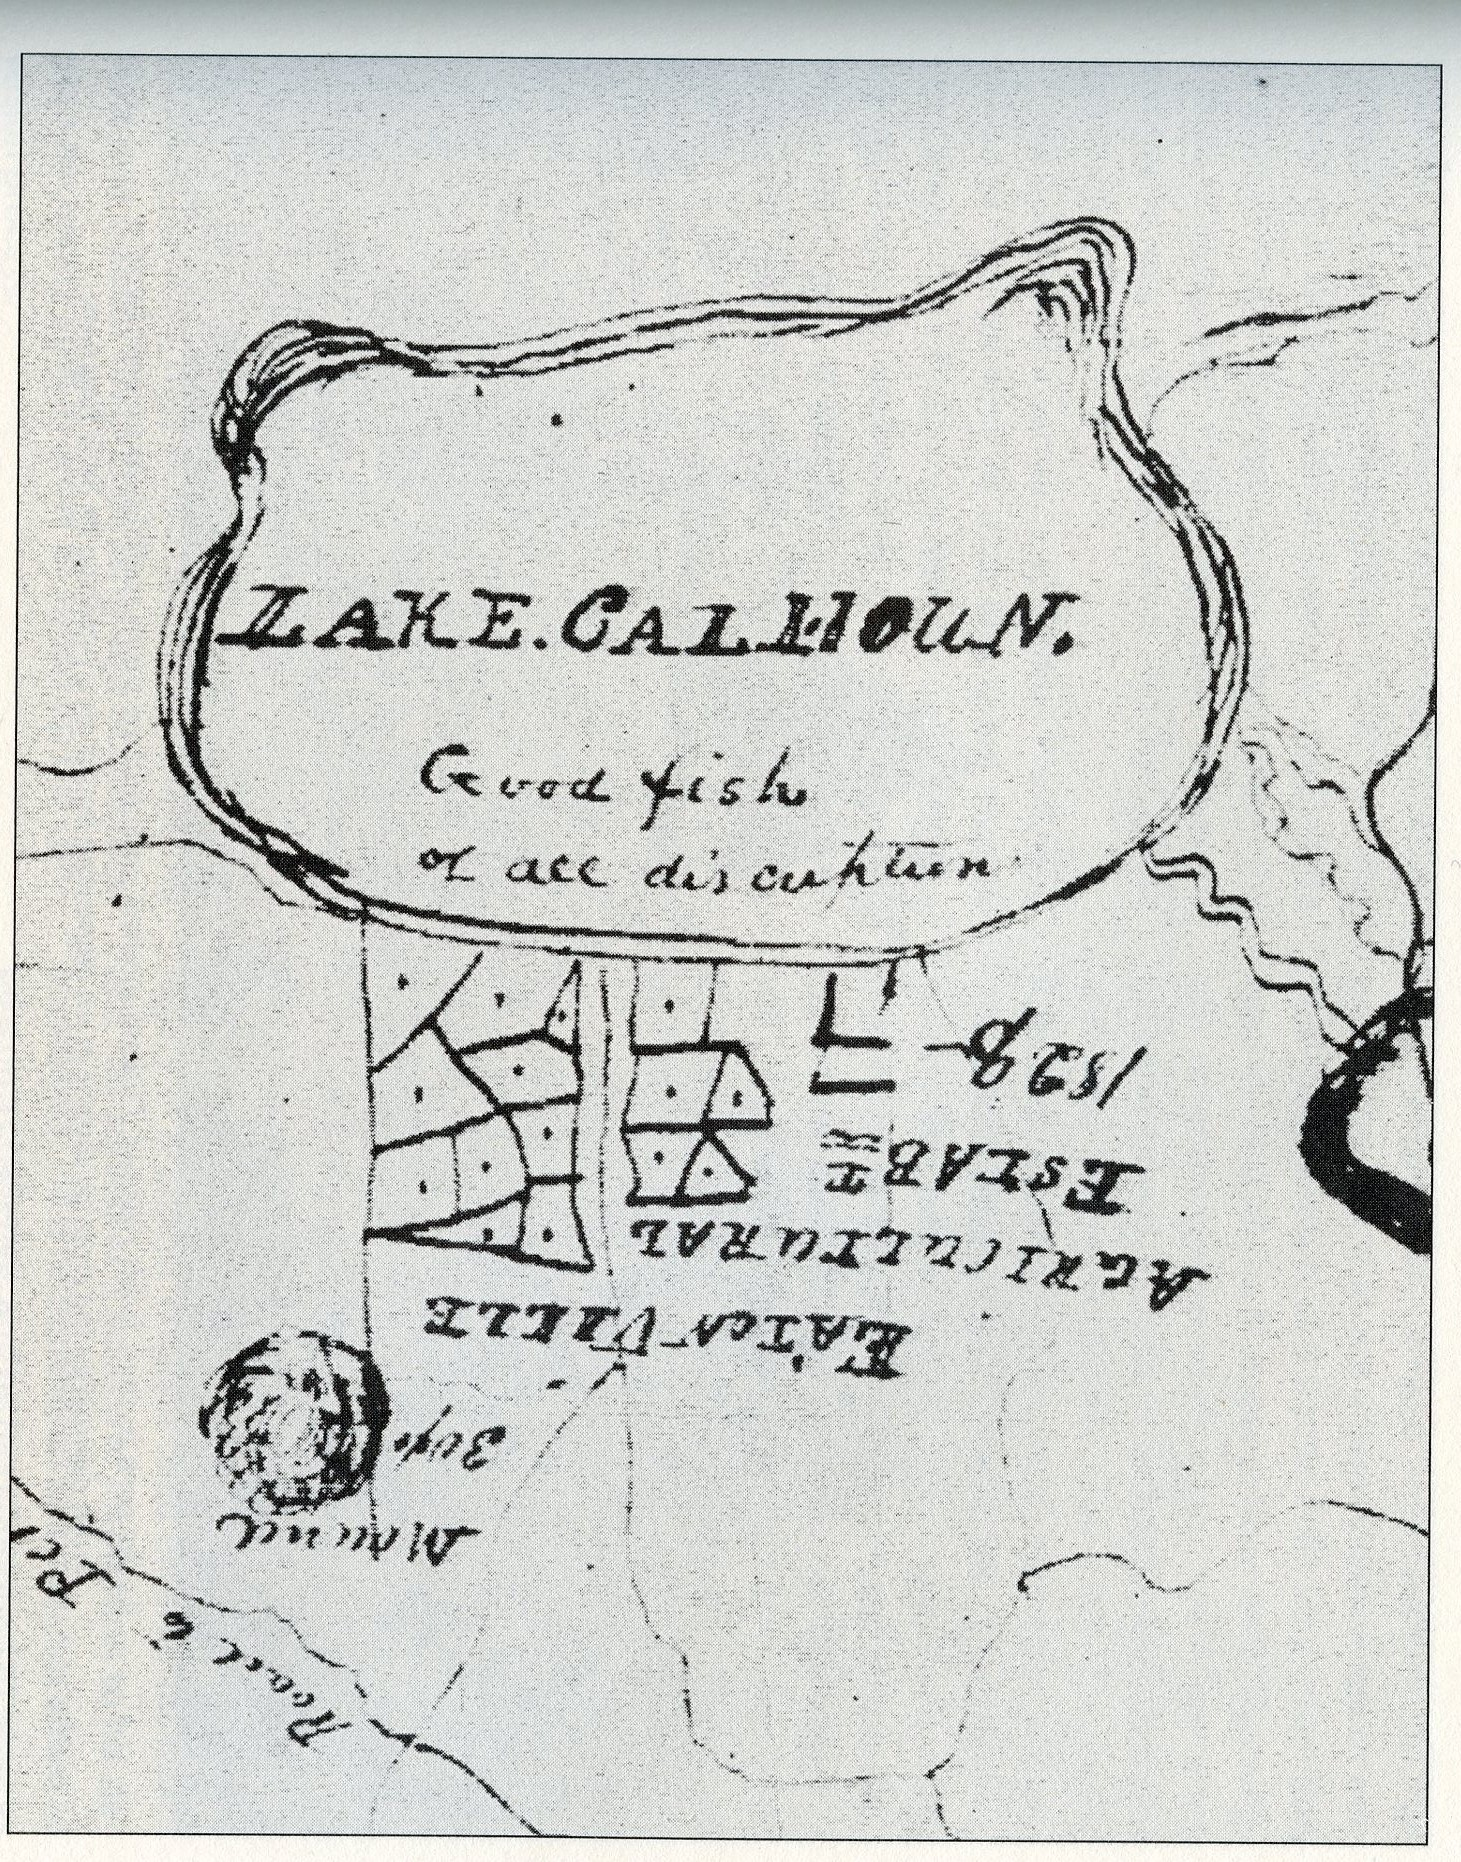 Lawrence Taliaferro's close up map of Lake Calhoun, MHS, 1835